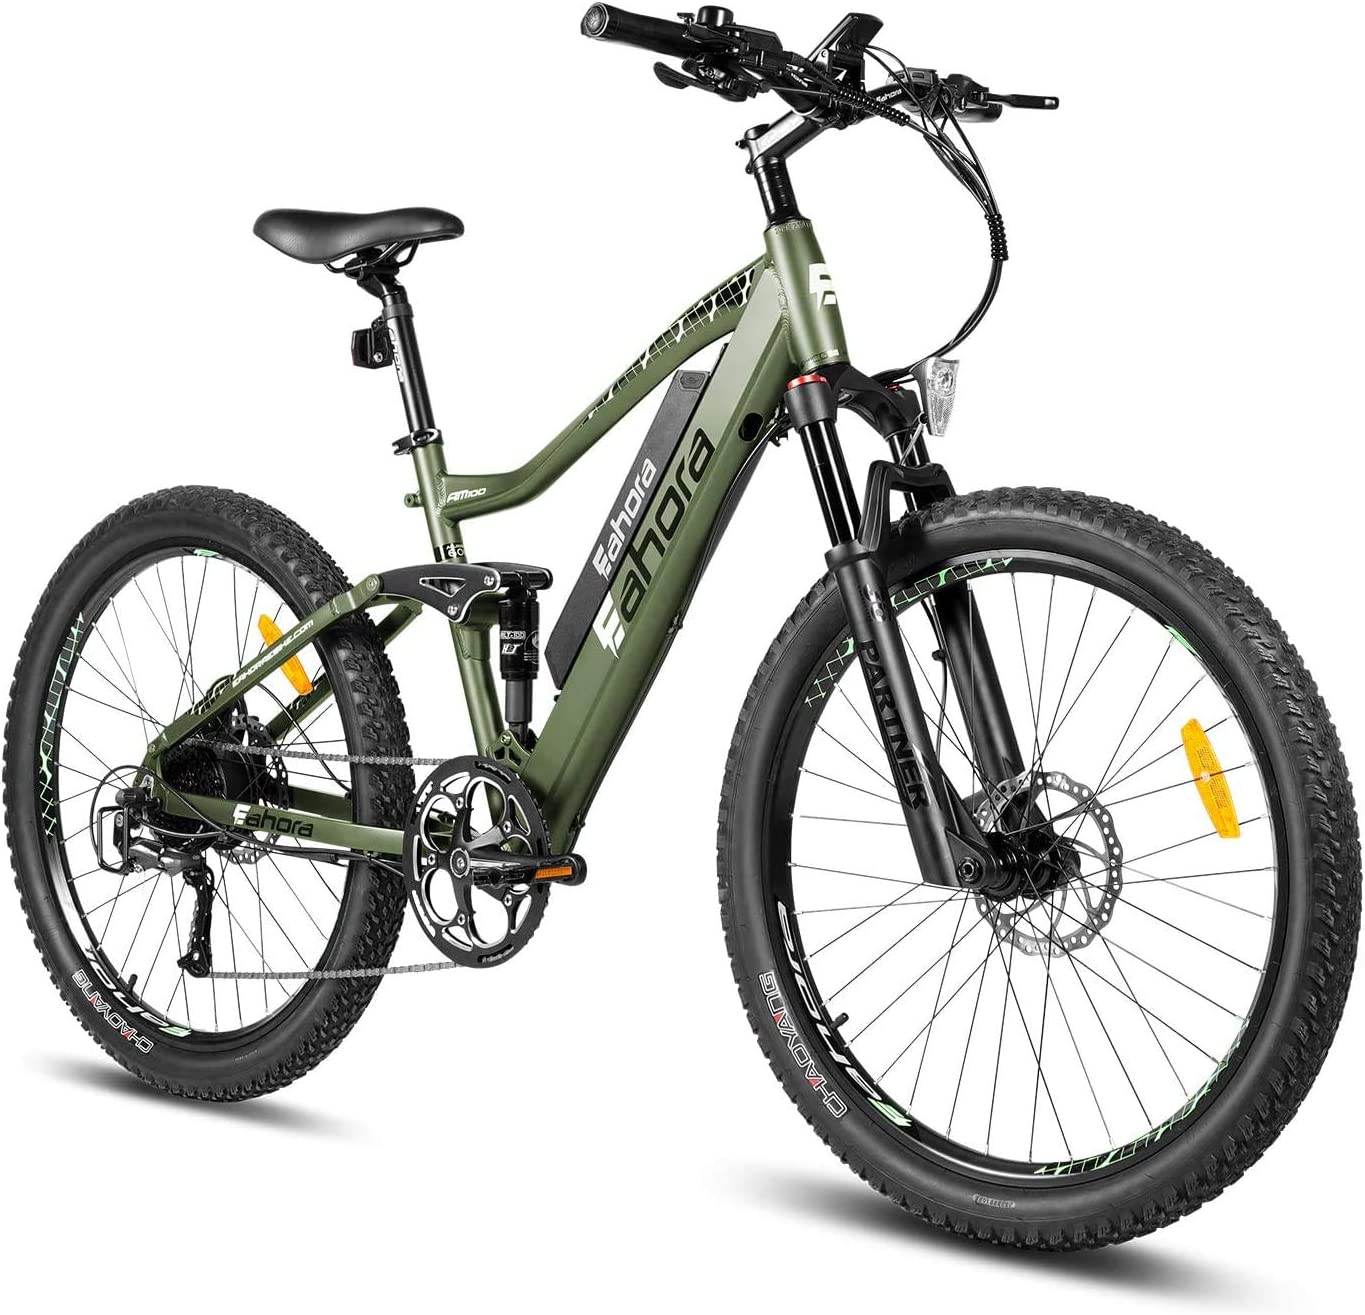 best full suspension mountain bike under 2000: eAhora AM100 27.5-inch 48V Mountain Electric Bicycle